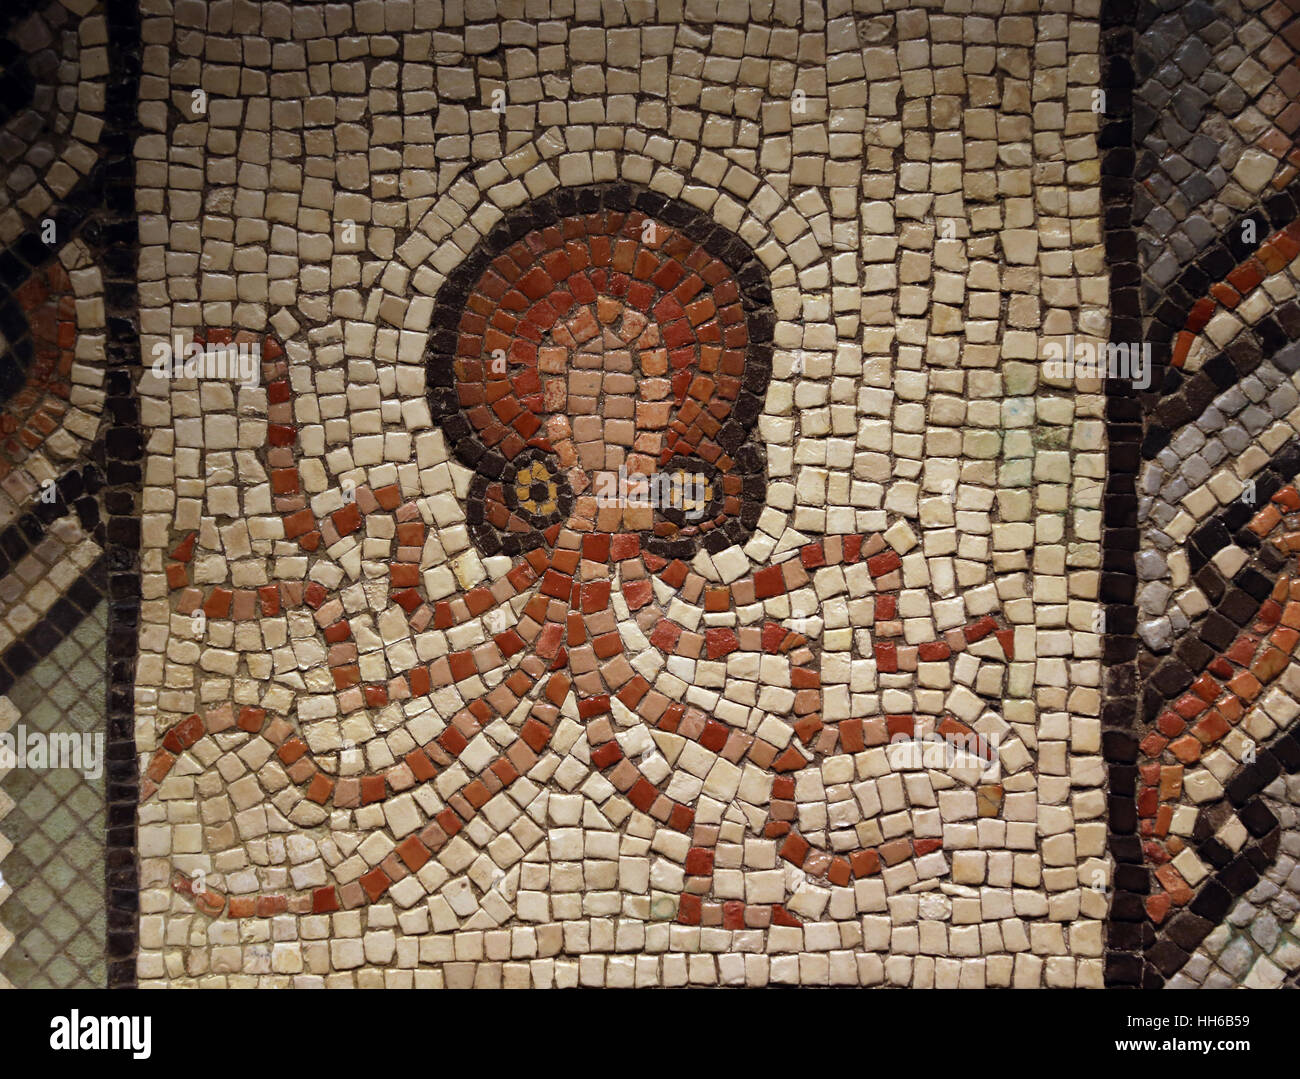 Mosaic with octopus. Limestone. 2nd-3rd century. Villaquejida, Leon. Spain. National Archaeological Museum, Madrid. - Stock Image